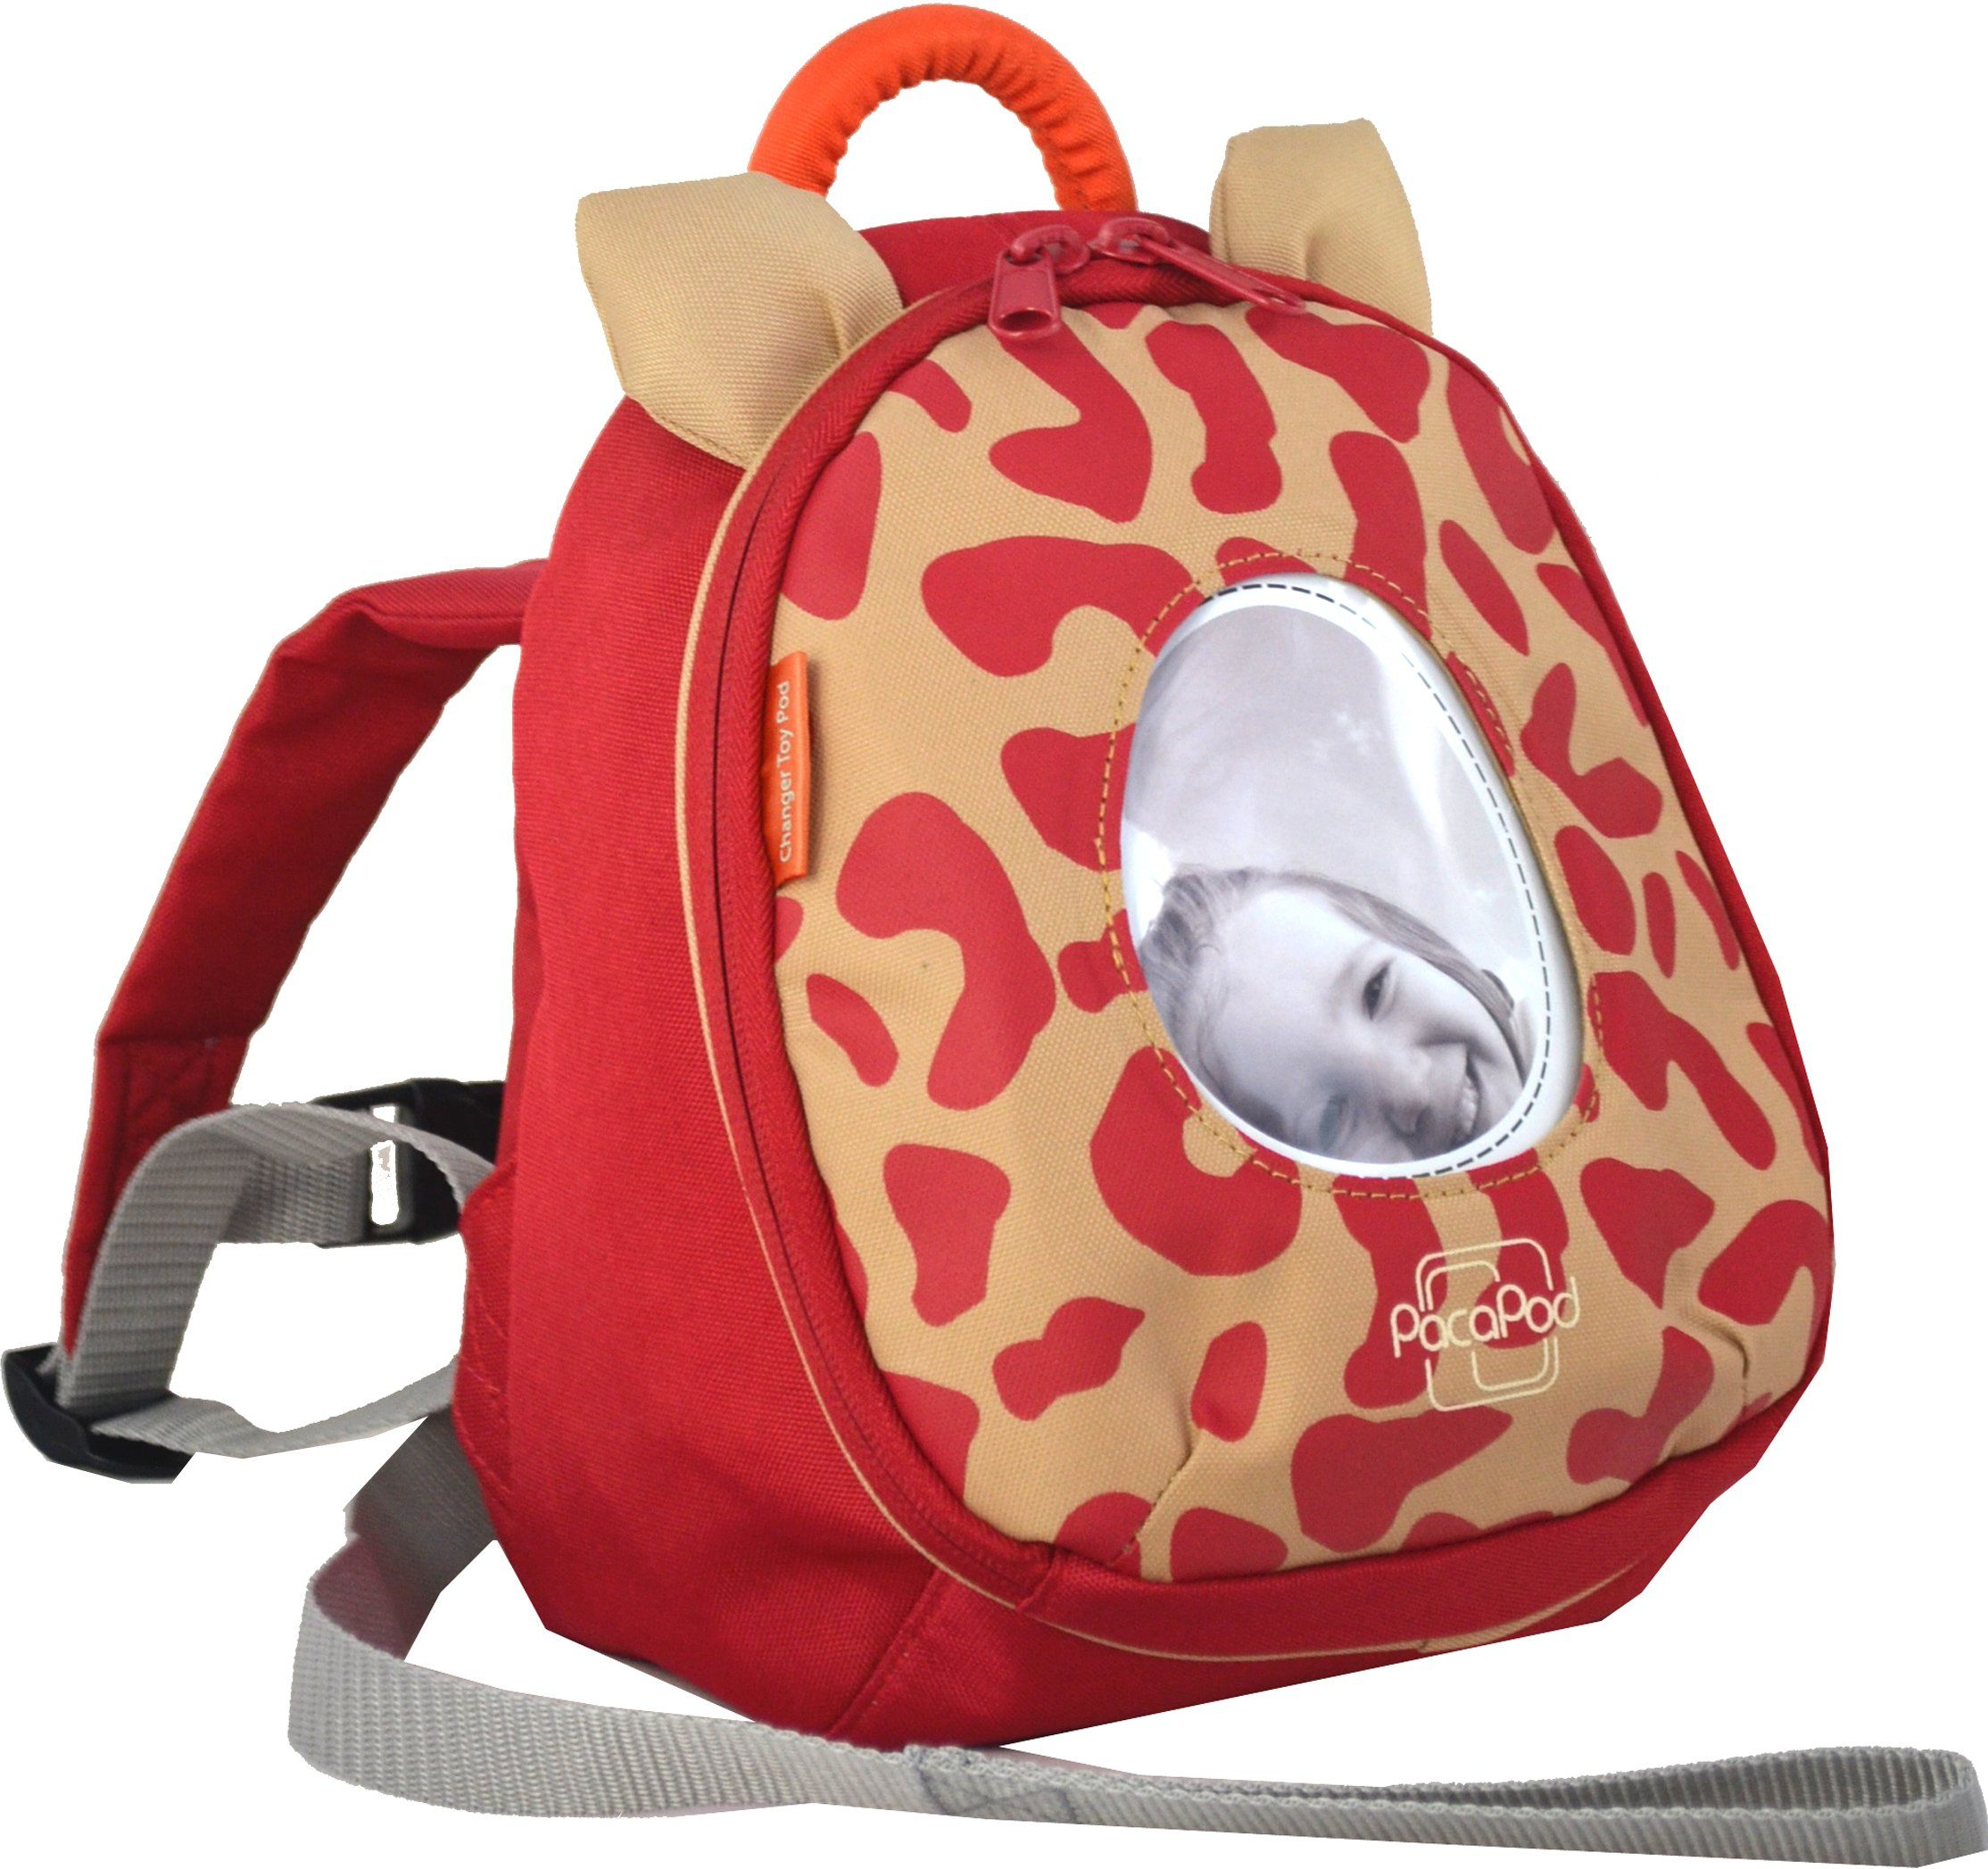 Changer Toy Pod - leopard red - PacaPod